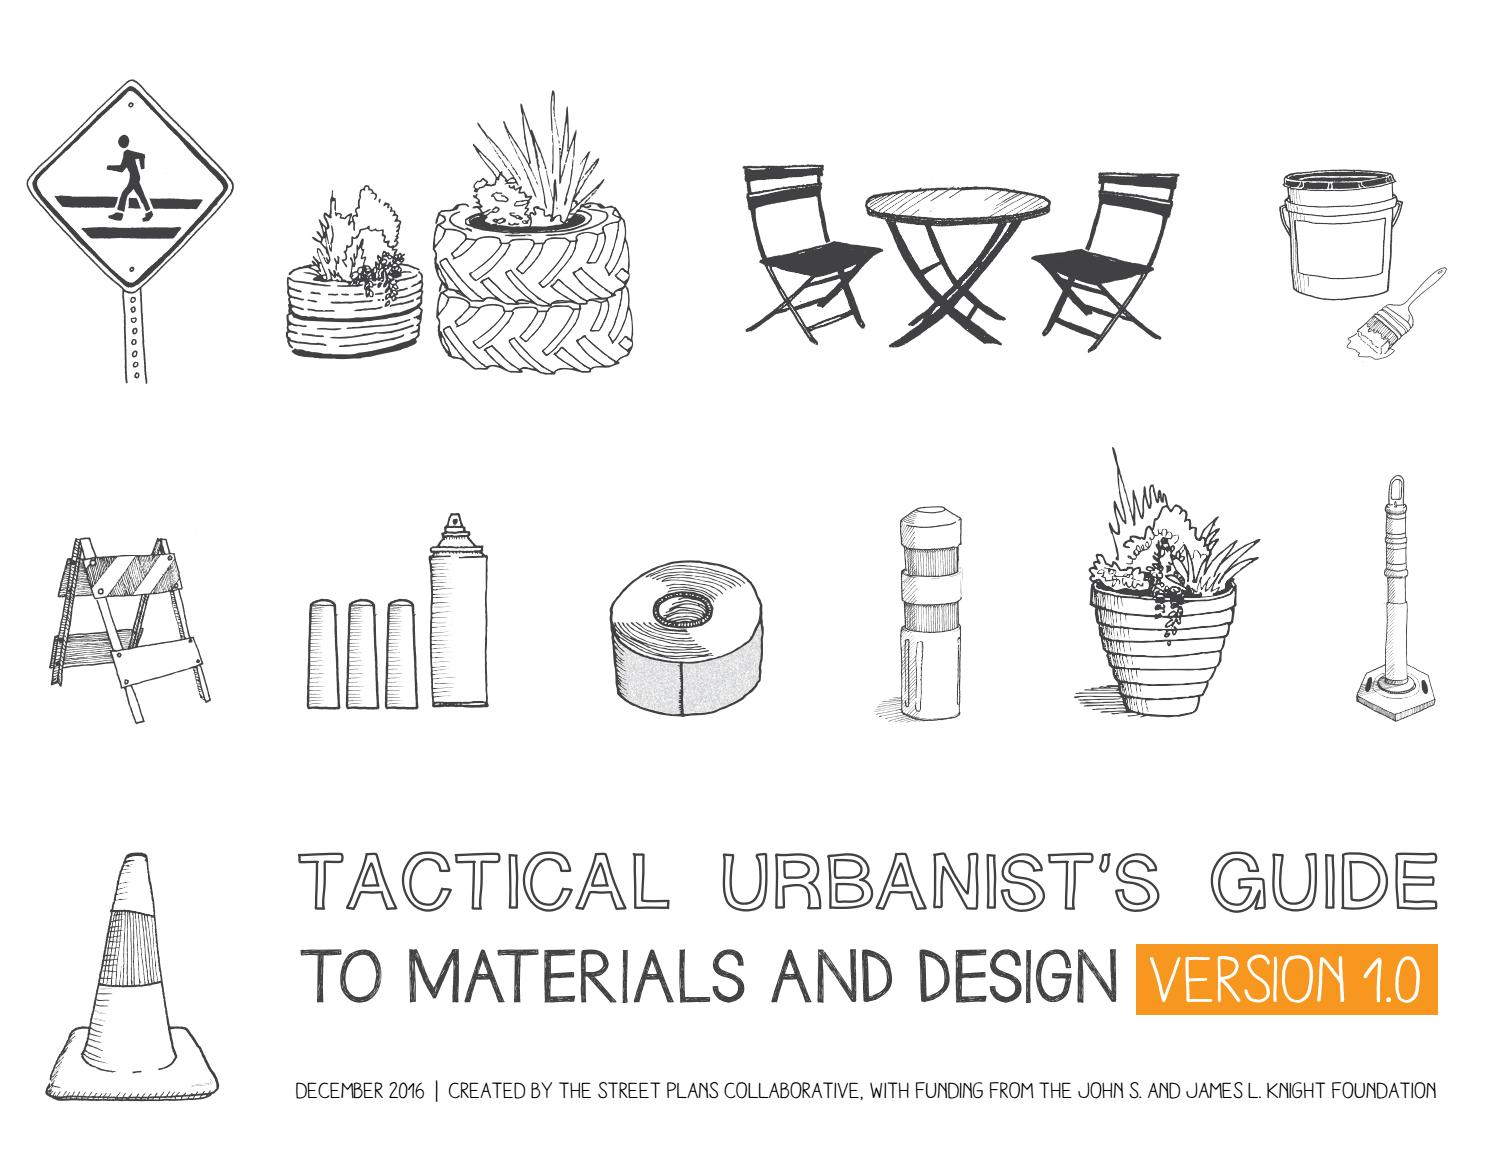 Tactical Urbanists Guide To Materials And Design V10 By The Murray Mini Bike Engine Diagrams Street Plans Collaborative Issuu